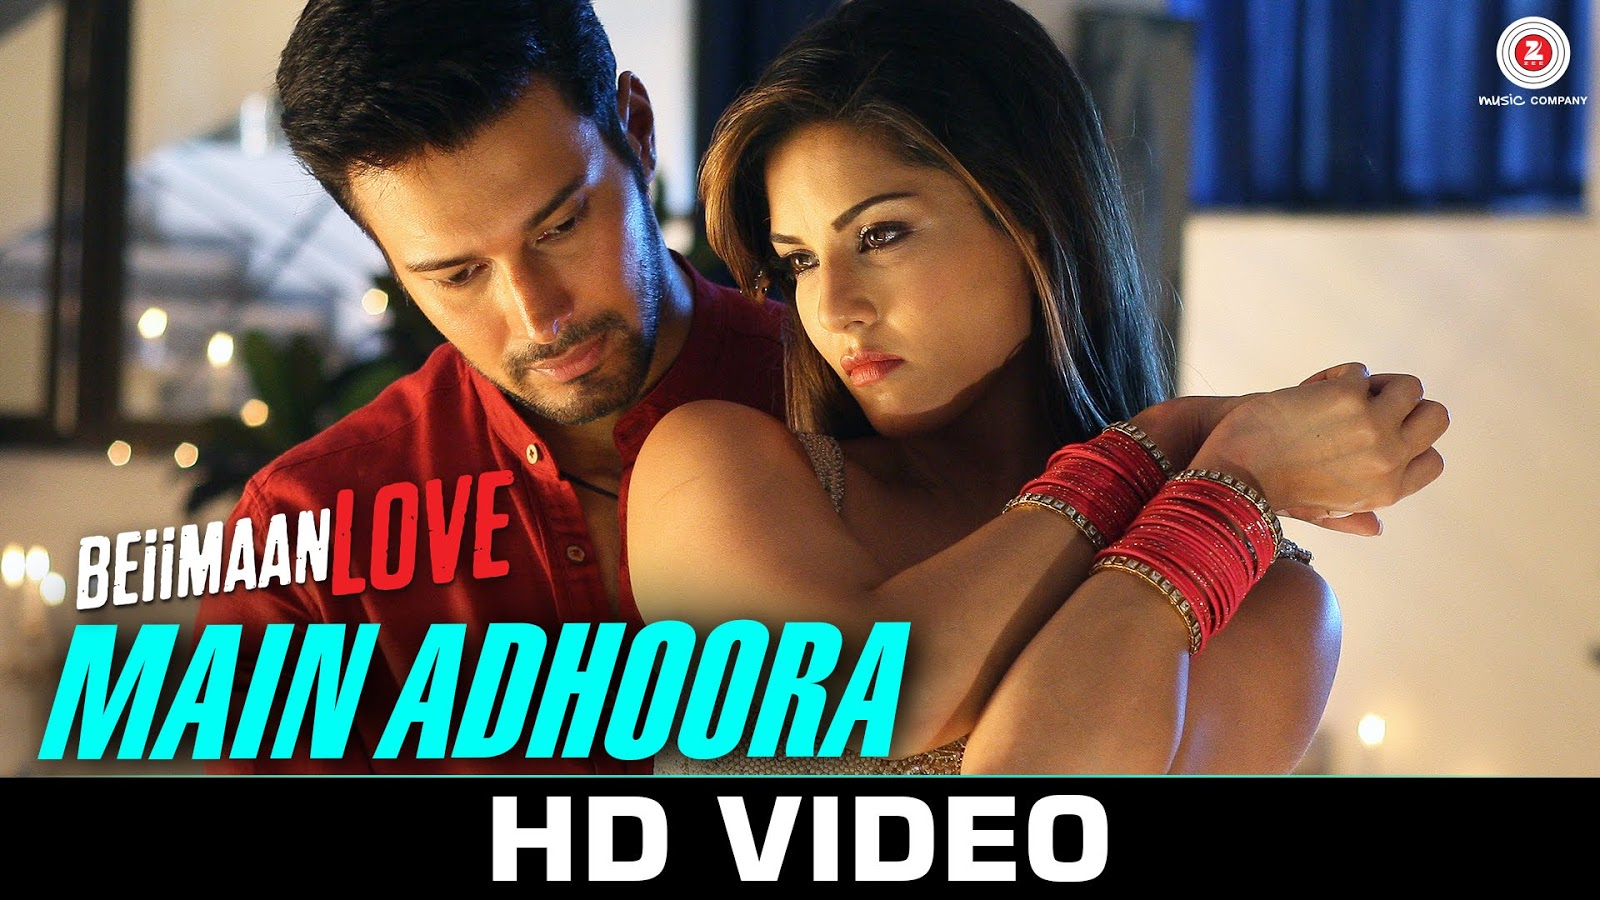 The Main Adhoora lyrics from 'Love Beiimaan', The song has been sung by Yaseer Desai, Aakanksha Sharma, . featuring Sunny Leone, Rajniesh Duggall, , . The music has been composed by Sanjeev-Darshan, , . The lyrics of Main Adhoora has been penned by Sameer Anjaan